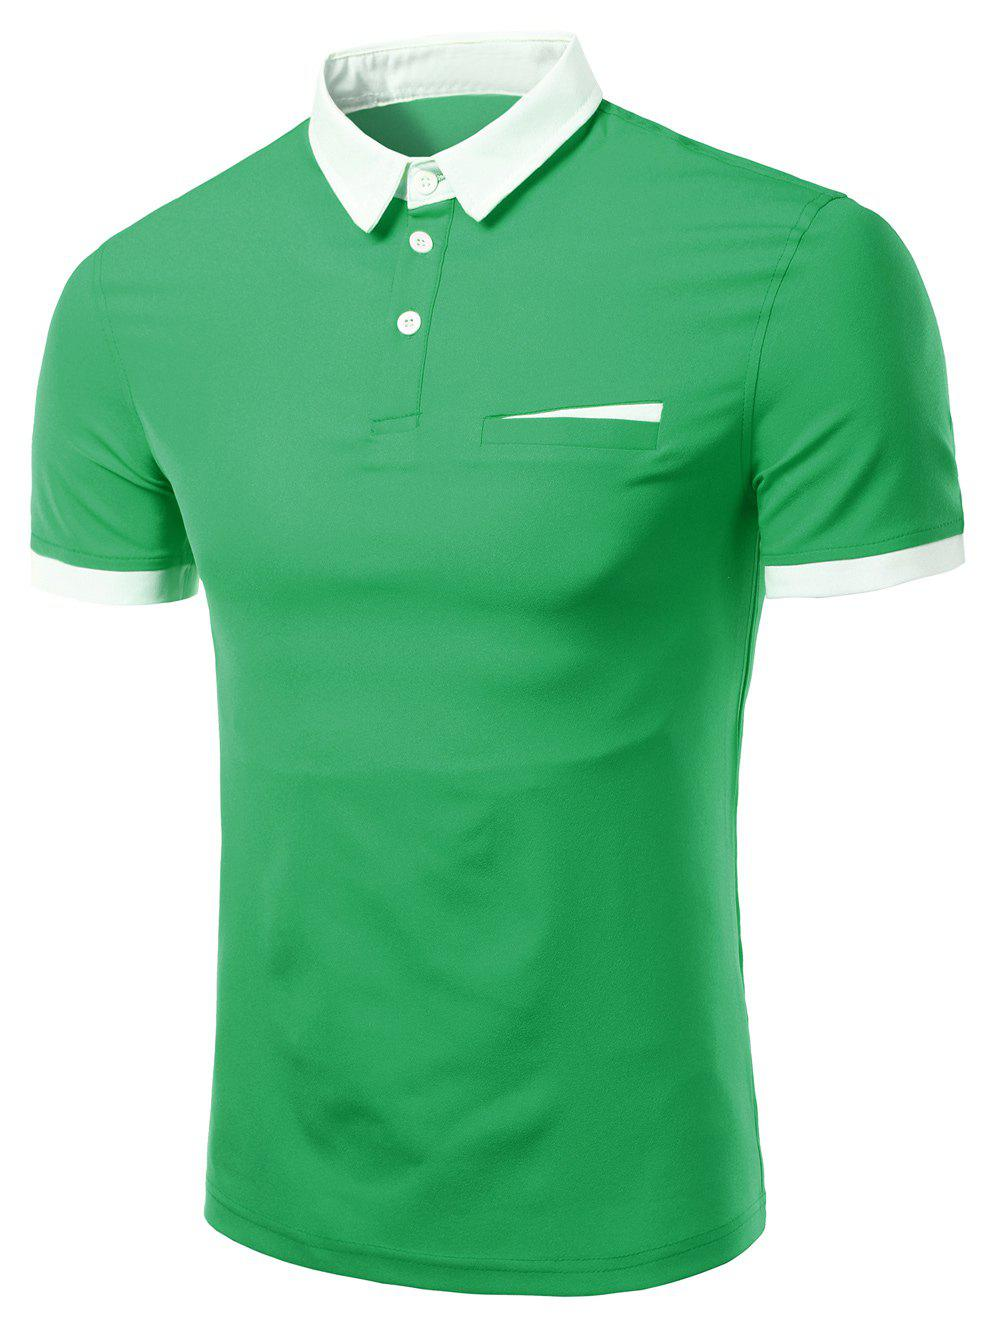 Men's Fashion Turn-down Collar Solid Color Short Sleeves Polo T-Shirt - GREEN 3XL